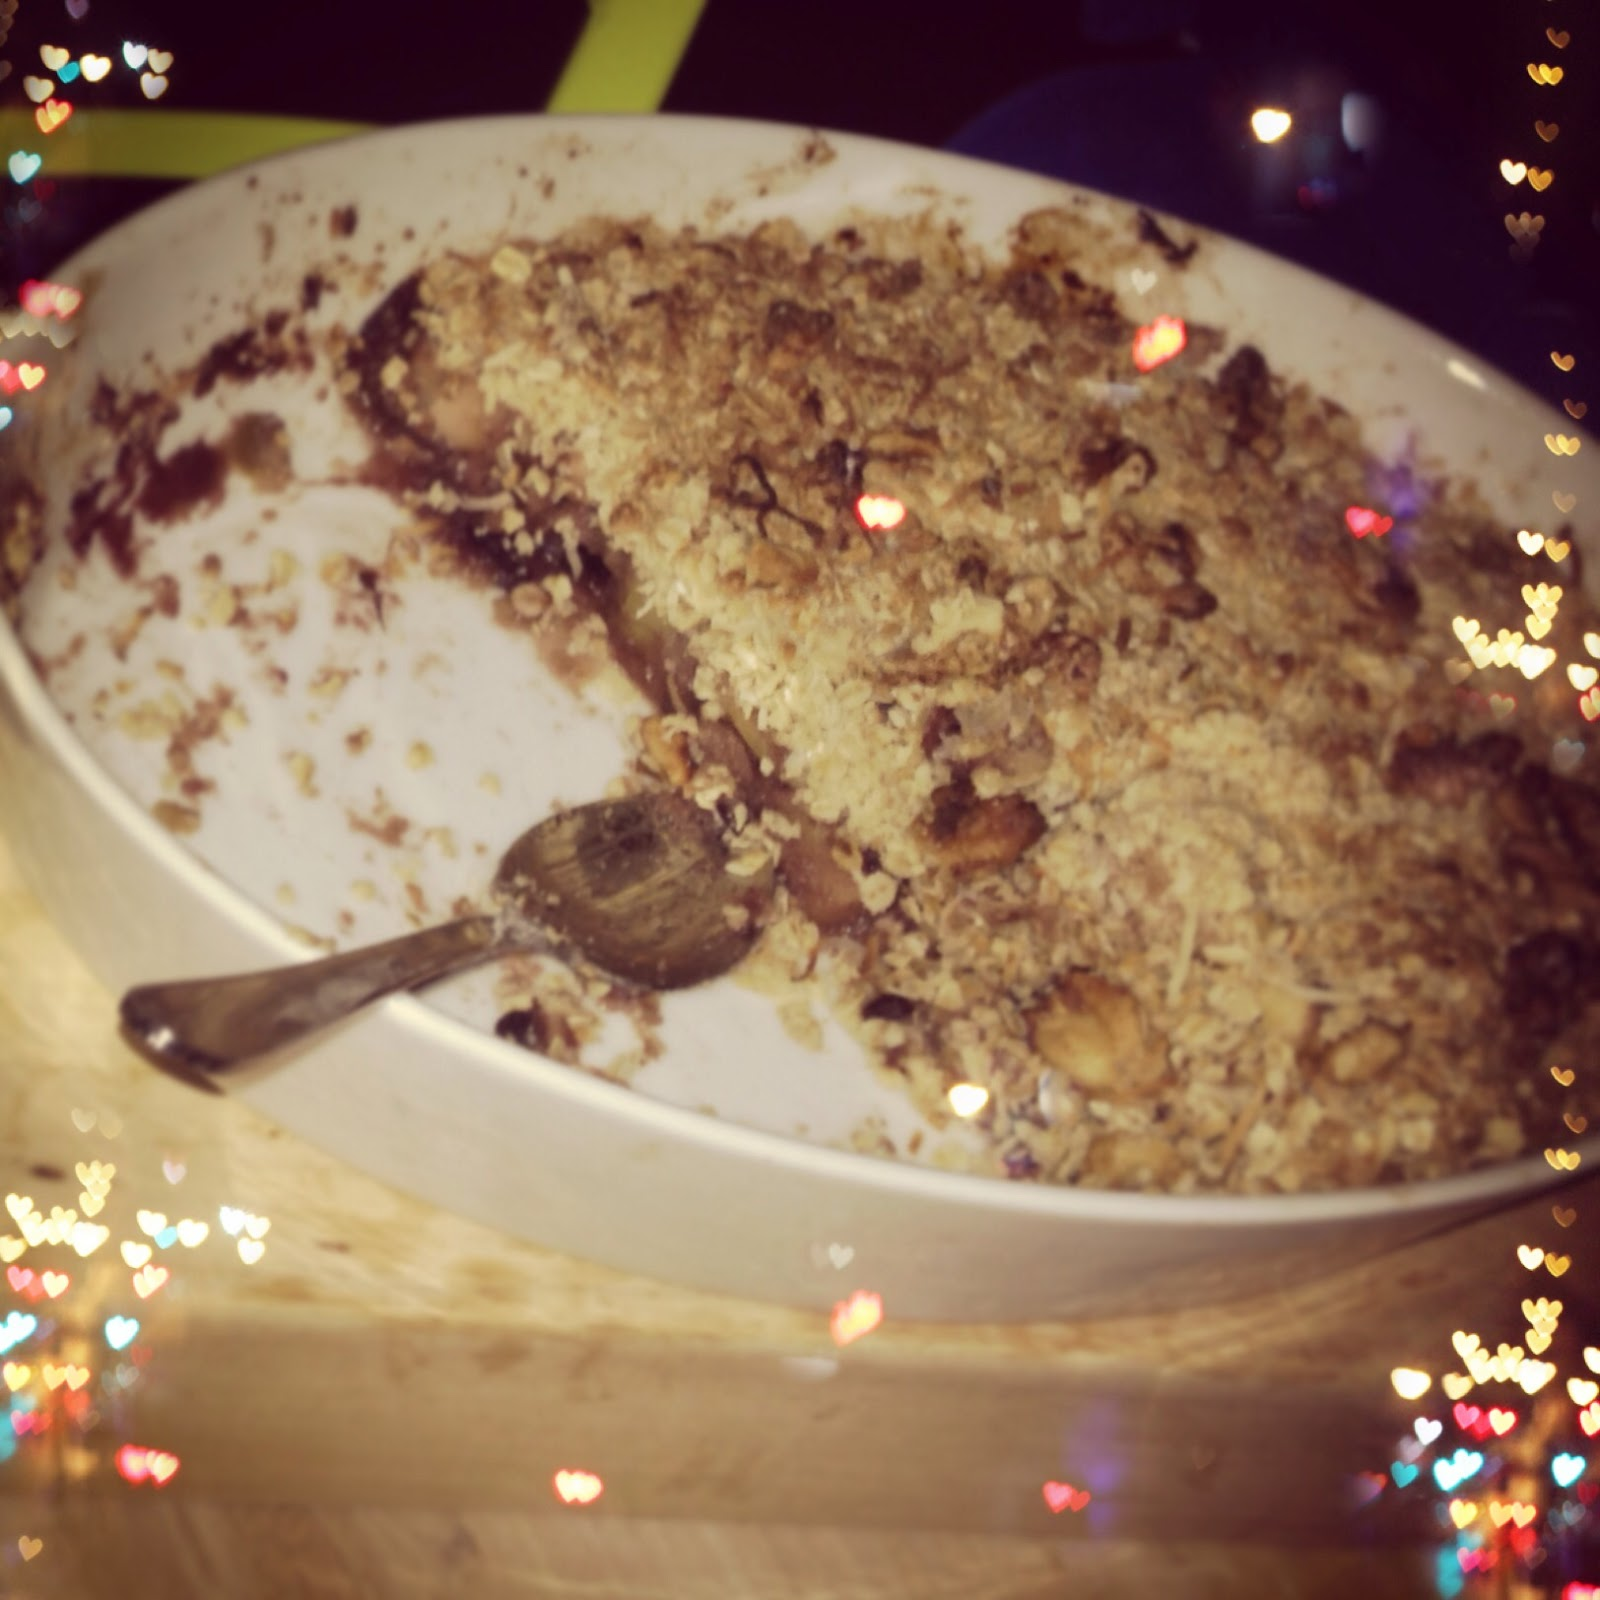 Skinny Sweets and Treats: Healthy Apple Blueberry Crumble